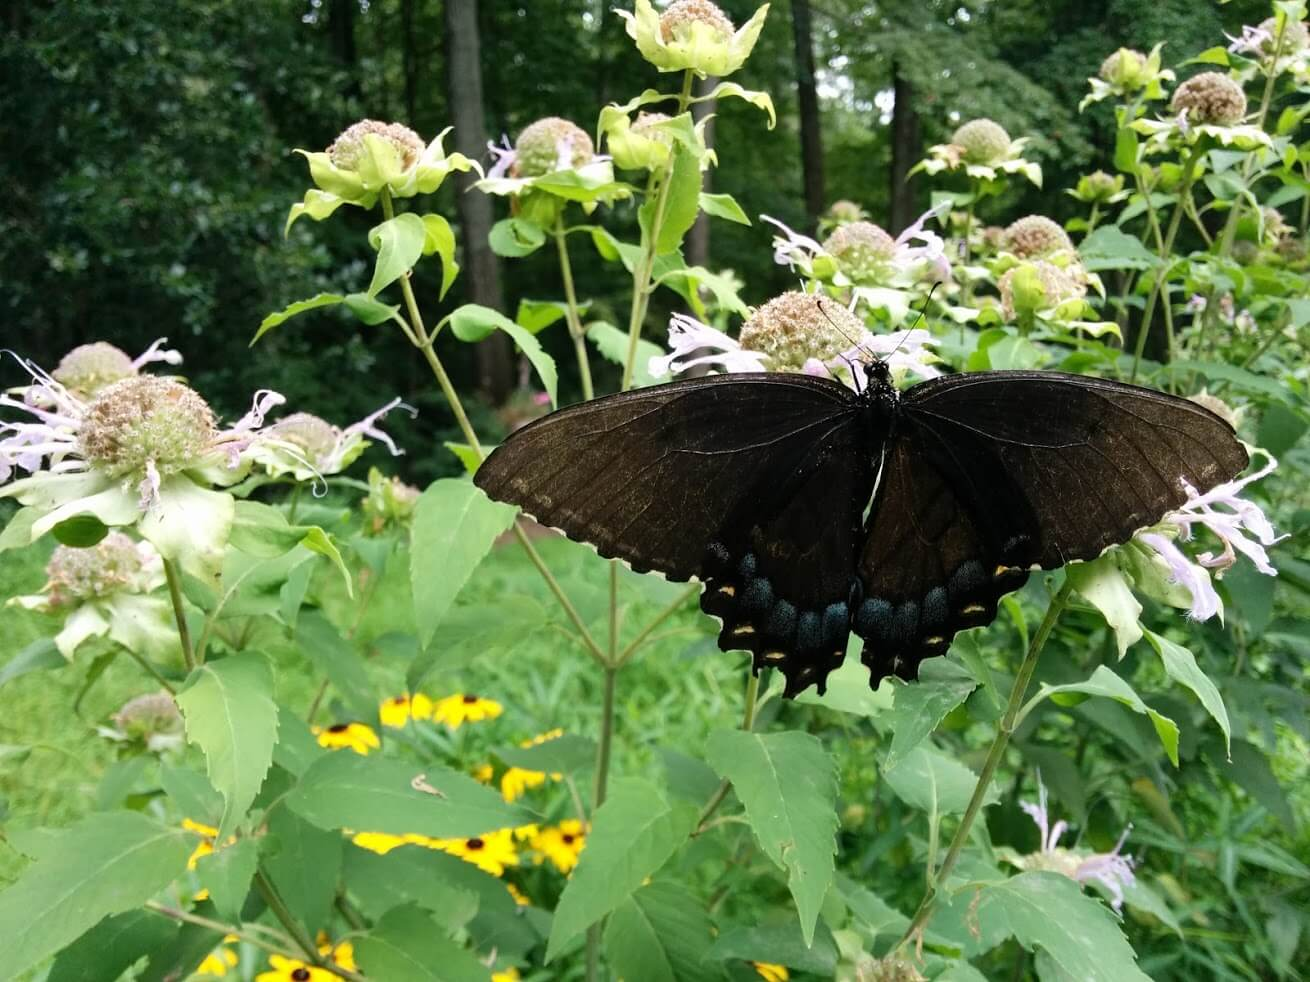 A butterfly on a flower in our yard in Reston, VA.